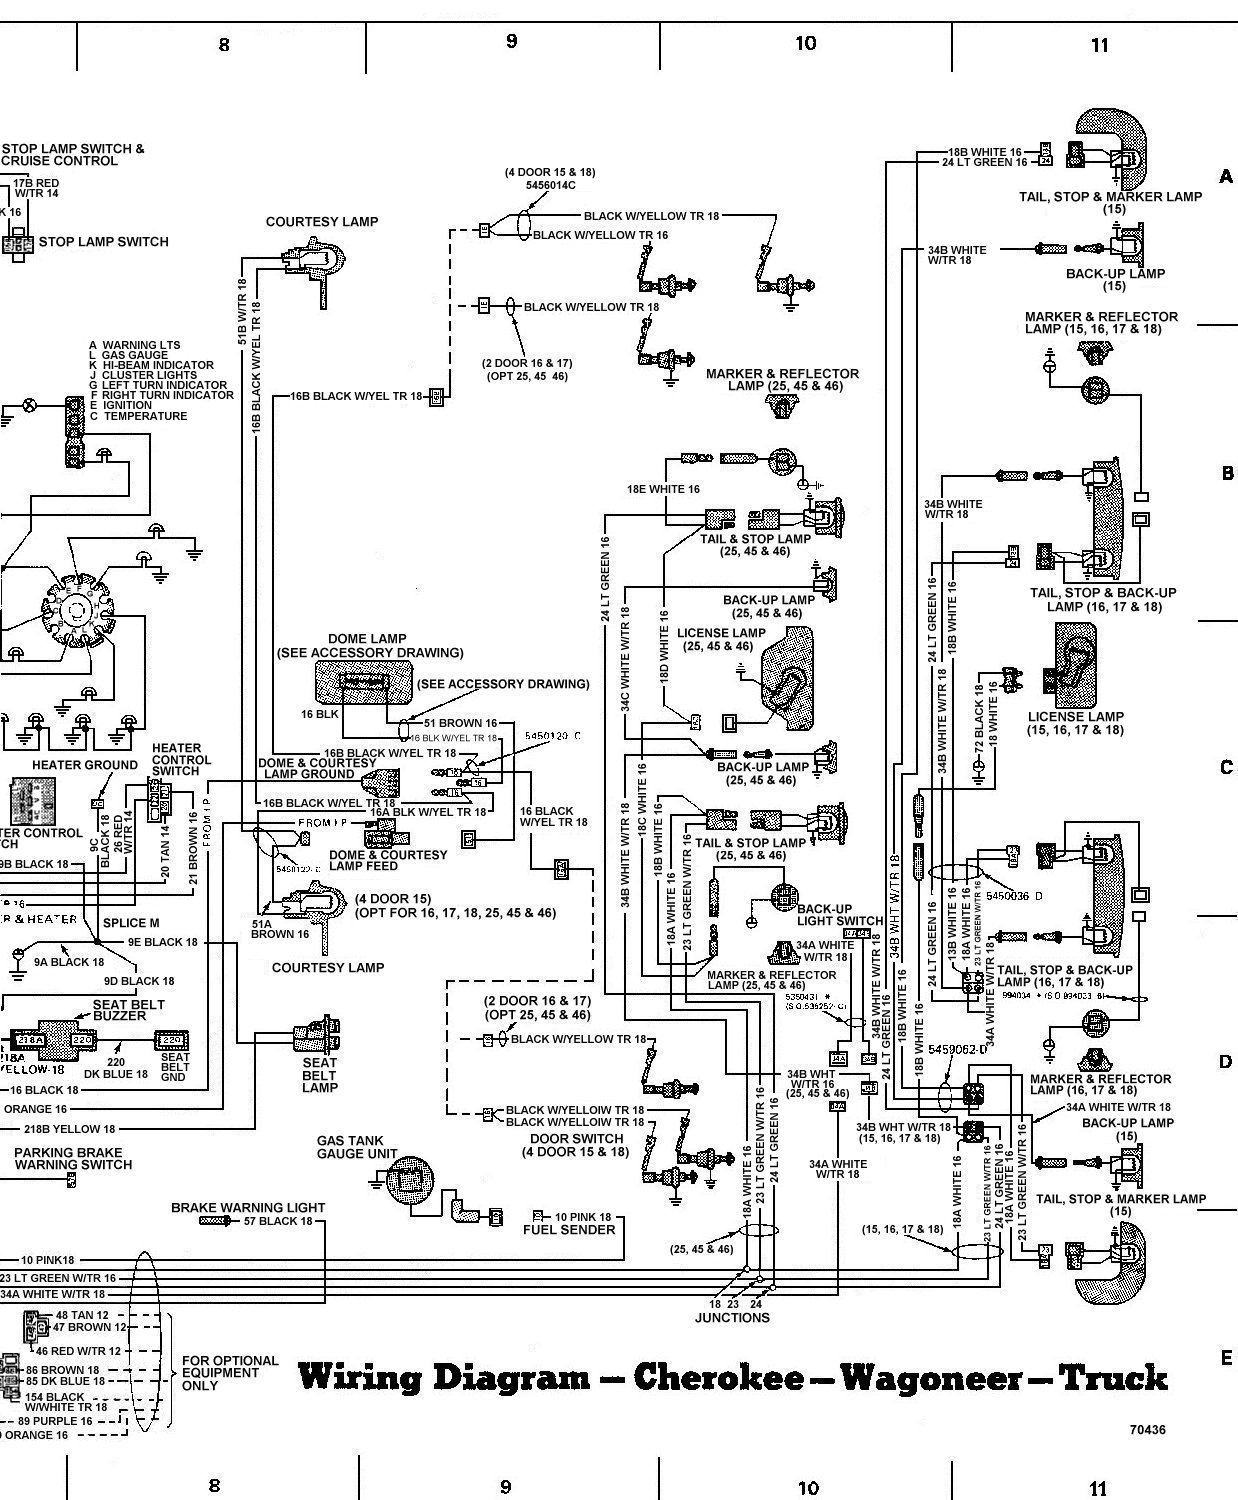 84 cherokee wiring diagram wiring diagrams schematics 84 cherokee wiring diagram wiring diagrams schematics 2000 jeep cherokee wiring diagram 1998 jeep grand cherokee cheapraybanclubmaster Images